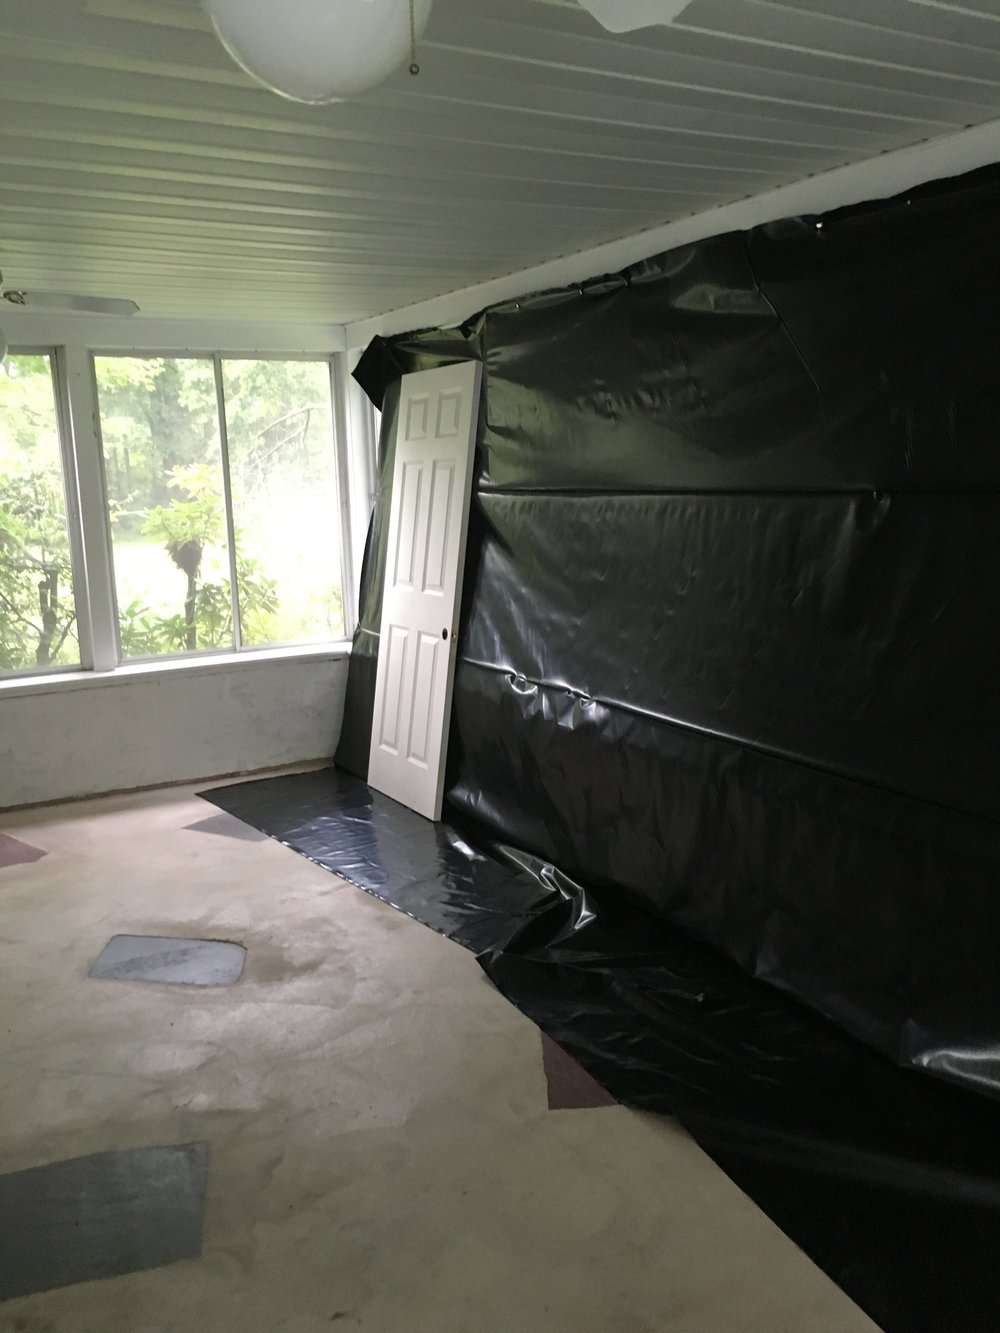 One of the first projects that we took on prior to moving in was re-painting all of the doors in the house. The sunroom was our staging area for all of the paint! Our first house purchase was literally a roll of black plastic to cover up the windows while we sprayed the doors.